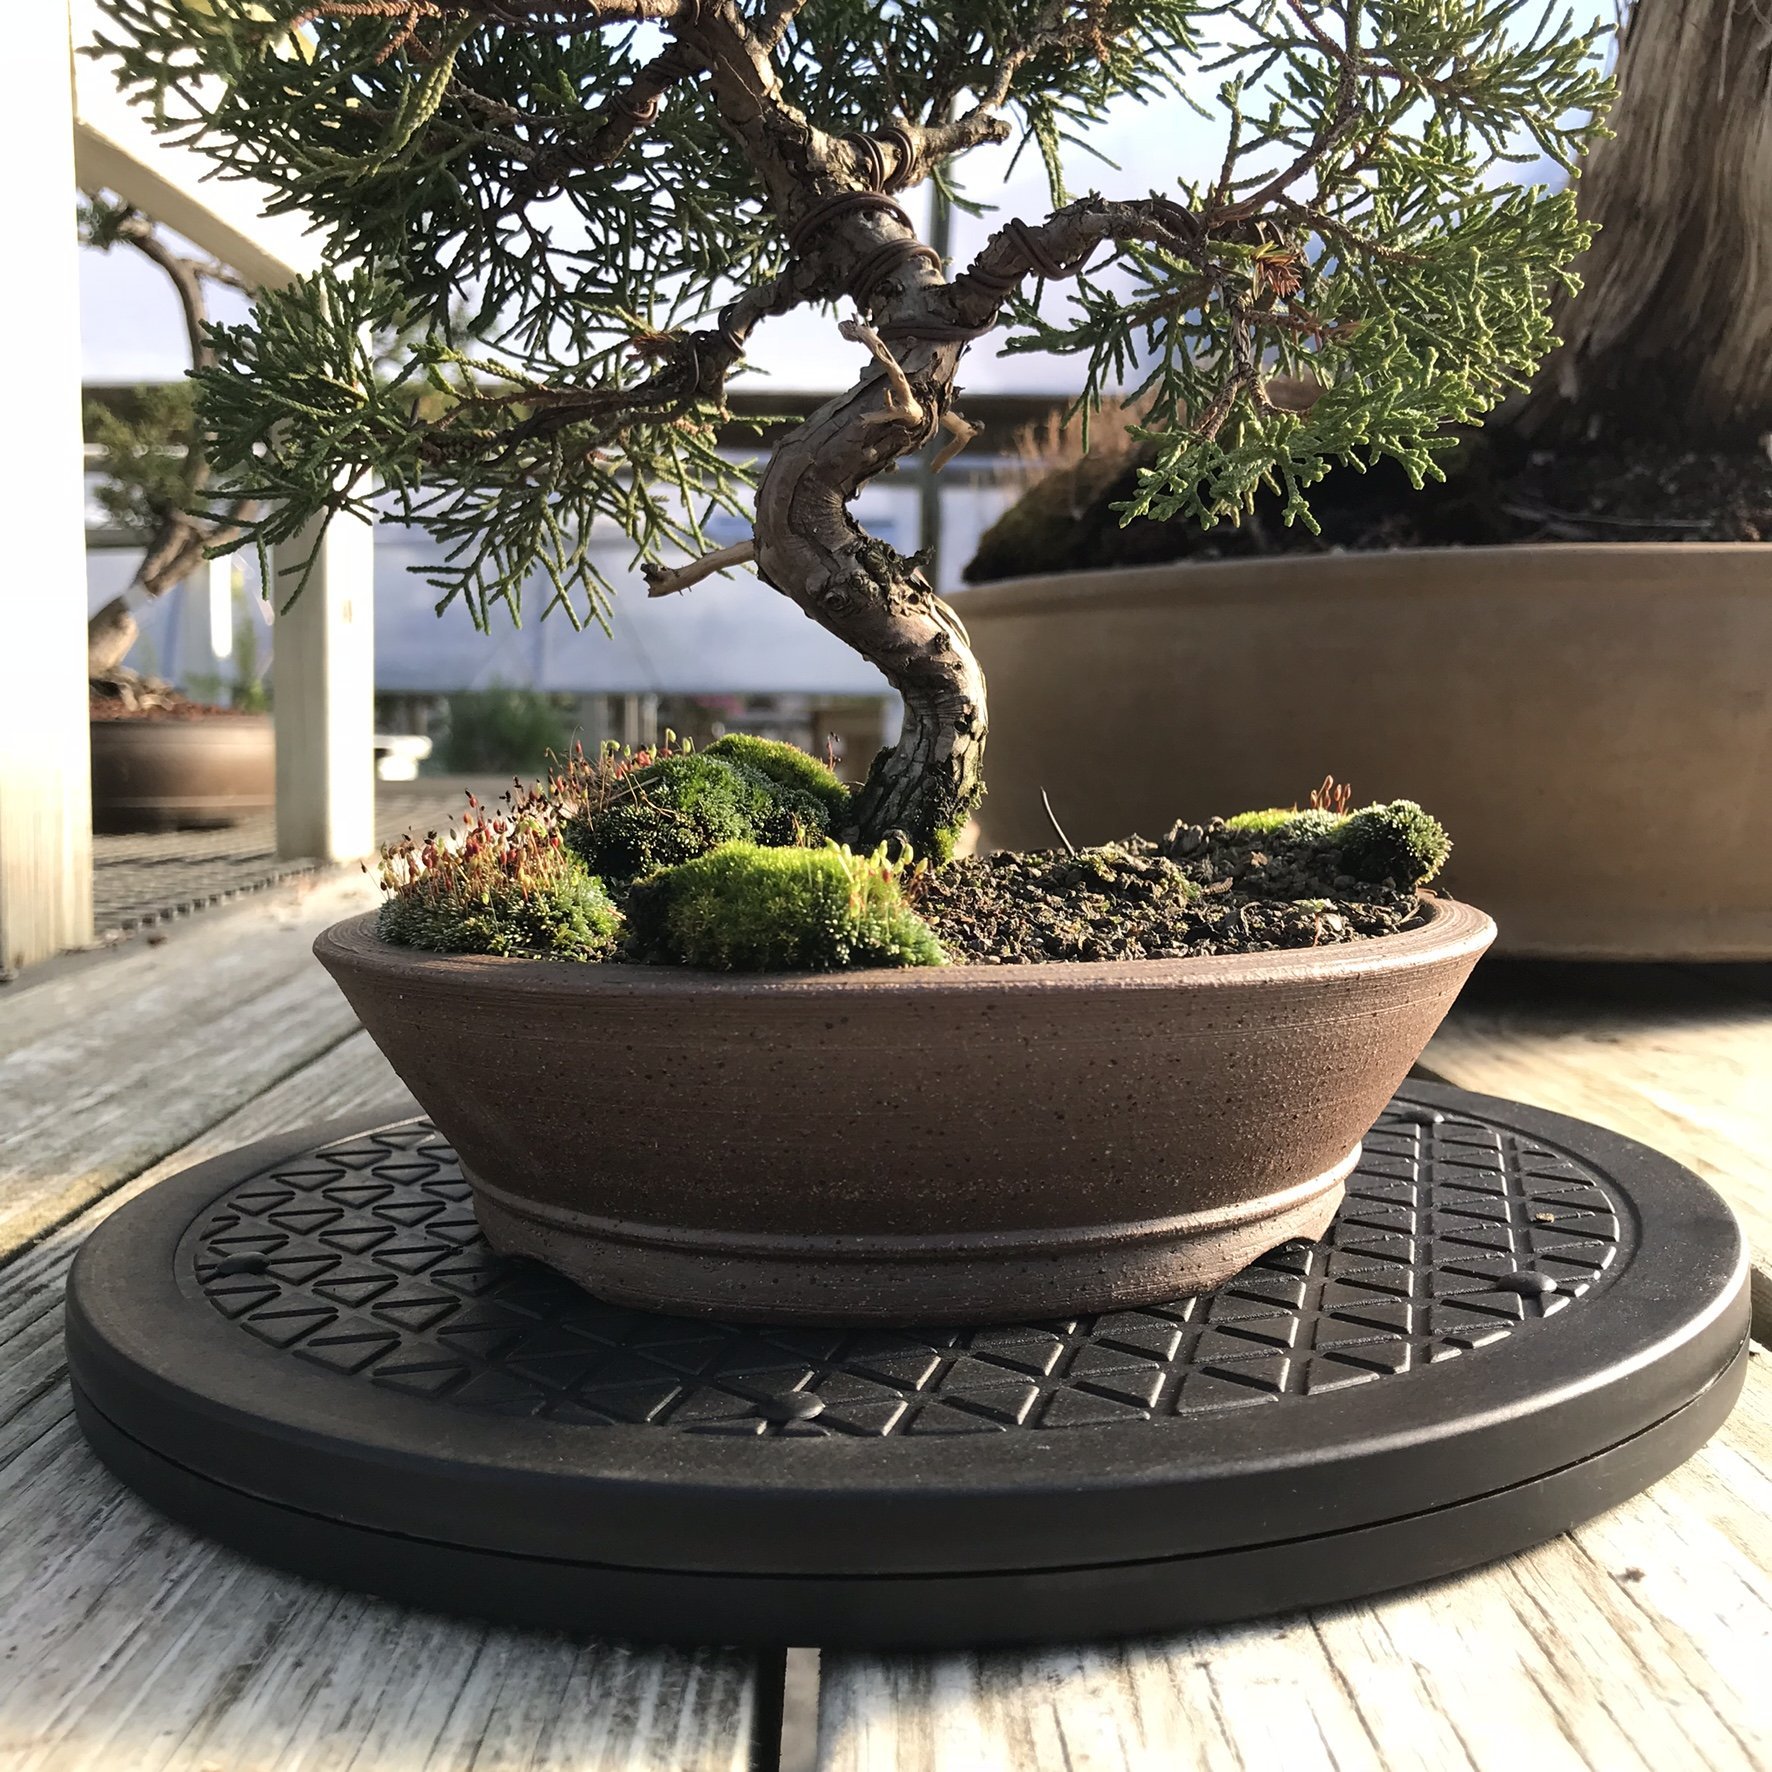 Mighty Mini Bonsai Tree Turntable 10'' Base Stainless Steel Low Cost 200-Pound Capacity 360-Degree Rotation Allows Easy Pruning Or Great Bonsai Tree Displays by Tinyroots